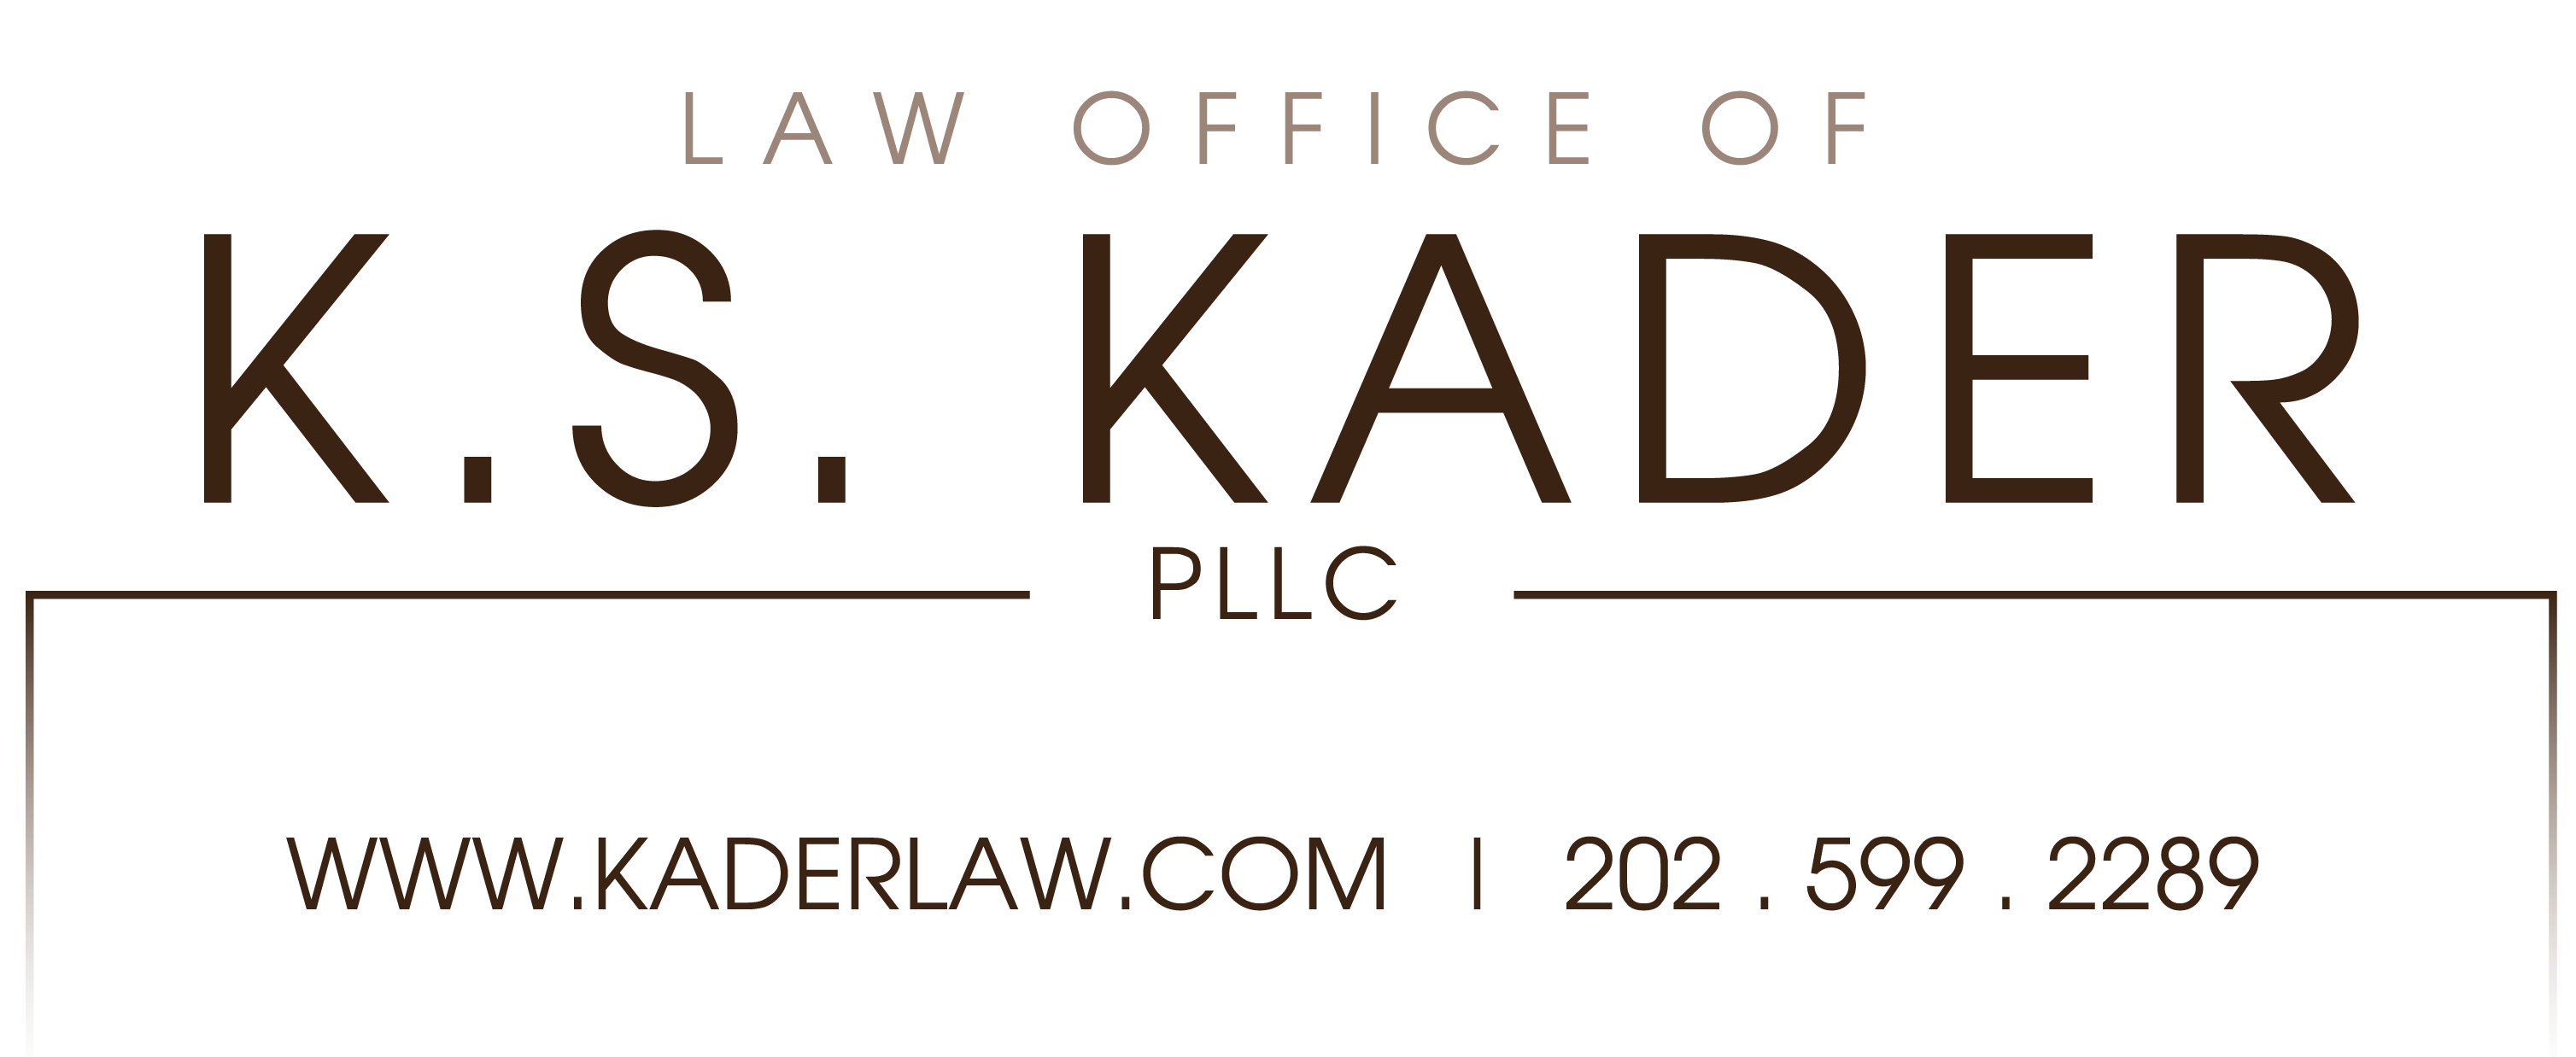 Washington DC Technology Business Lawyer – Law Office of K.S. Kader